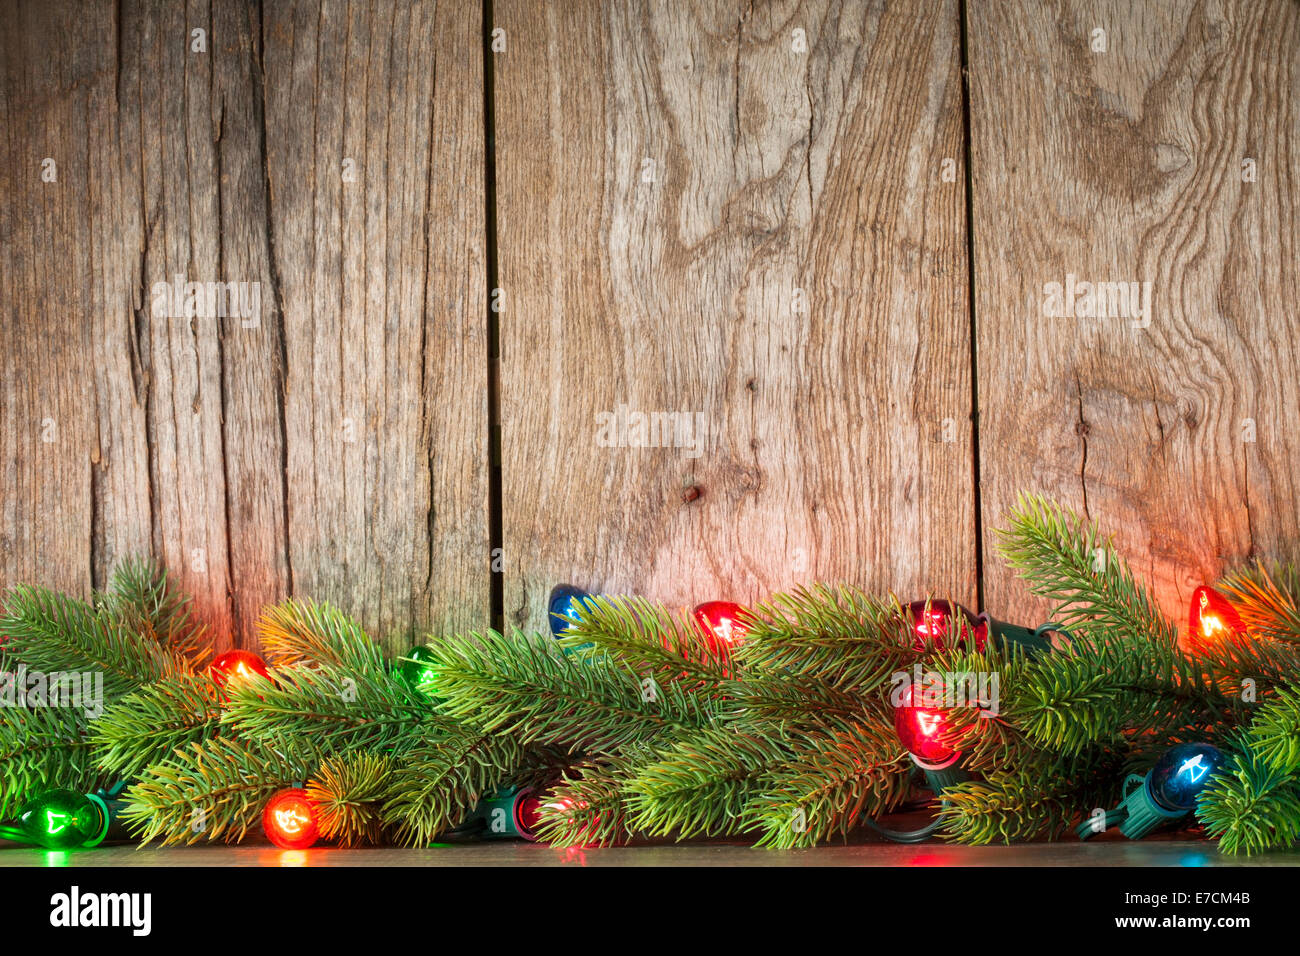 Christmas Tree Branch With Lights On Grunge Wood